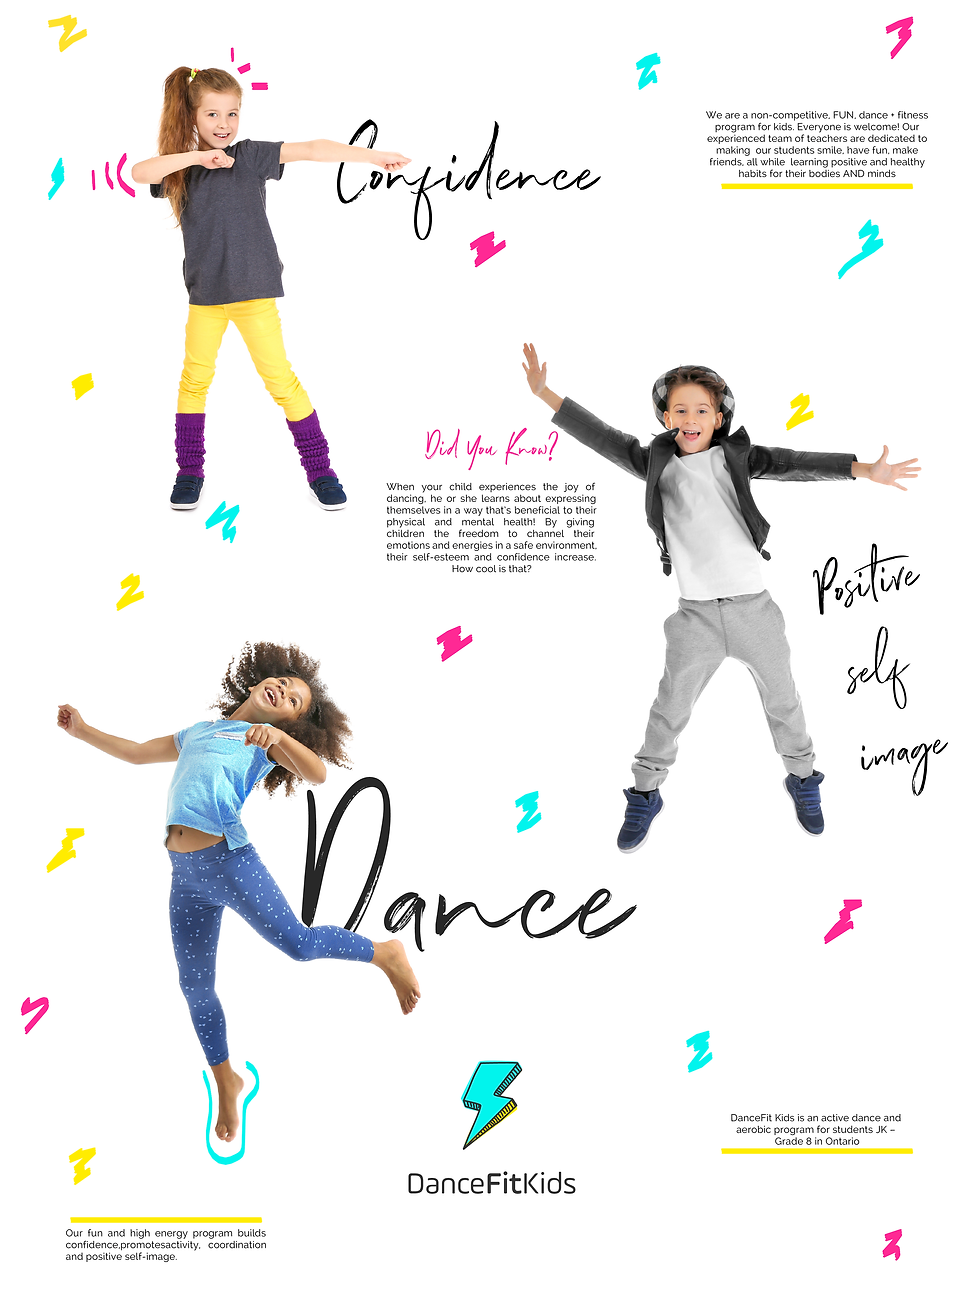 DanceFitKids-14.png